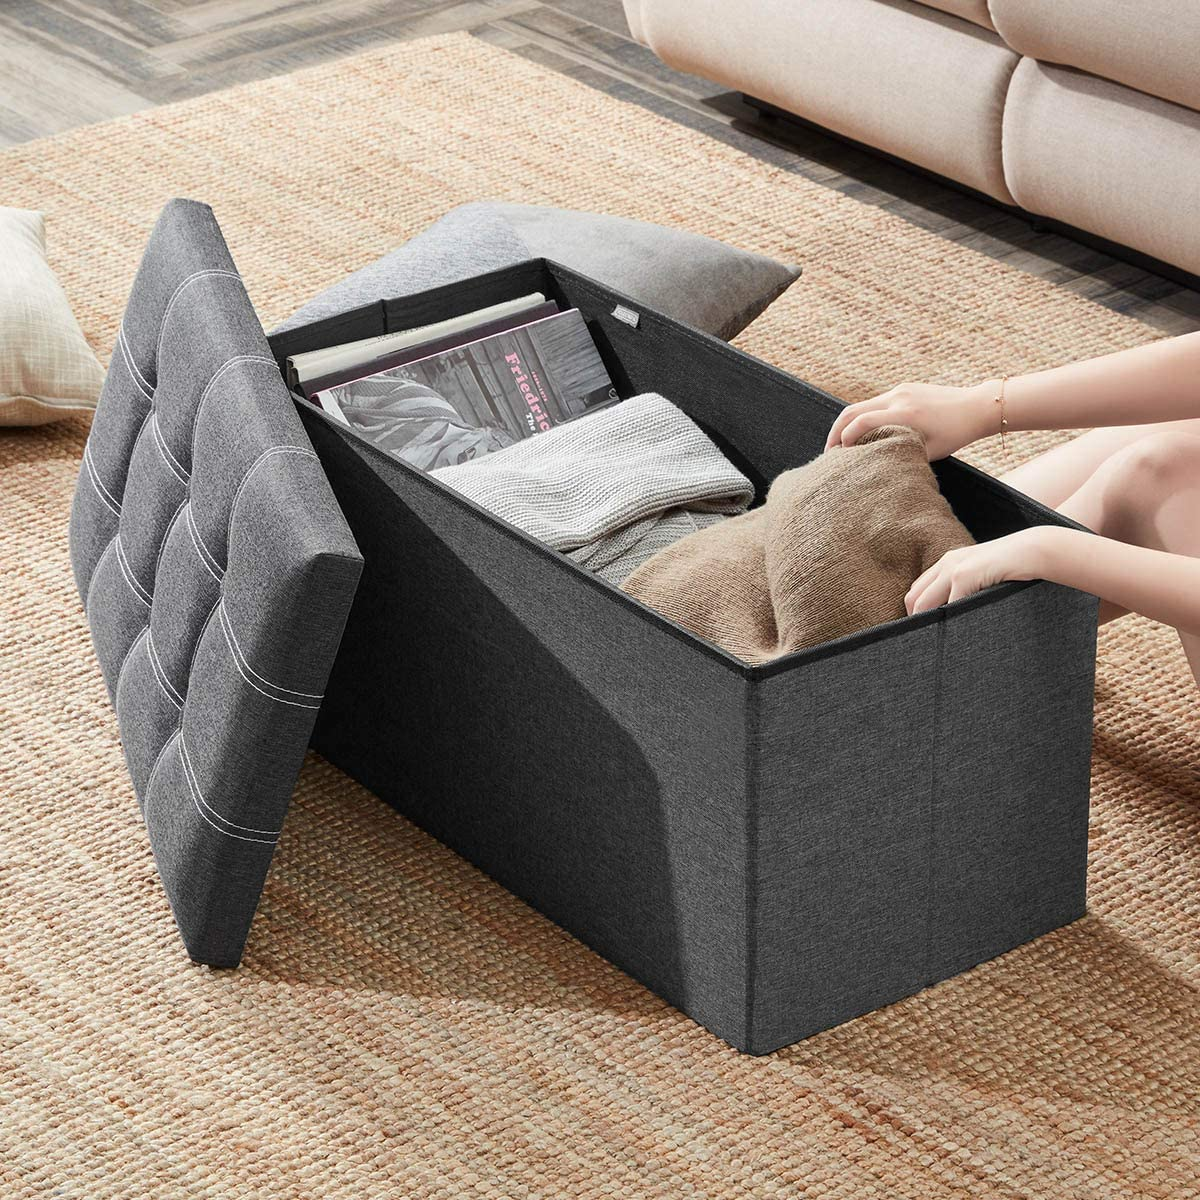 YOUDENOVA 30 inches Storage Ottoman Bench, Foldable Footrest Shoe Bench with 80L Storage Space, End of Bed Storage Seat, Support 350lbs, Linen Fabric Grey: Kitchen & Dining